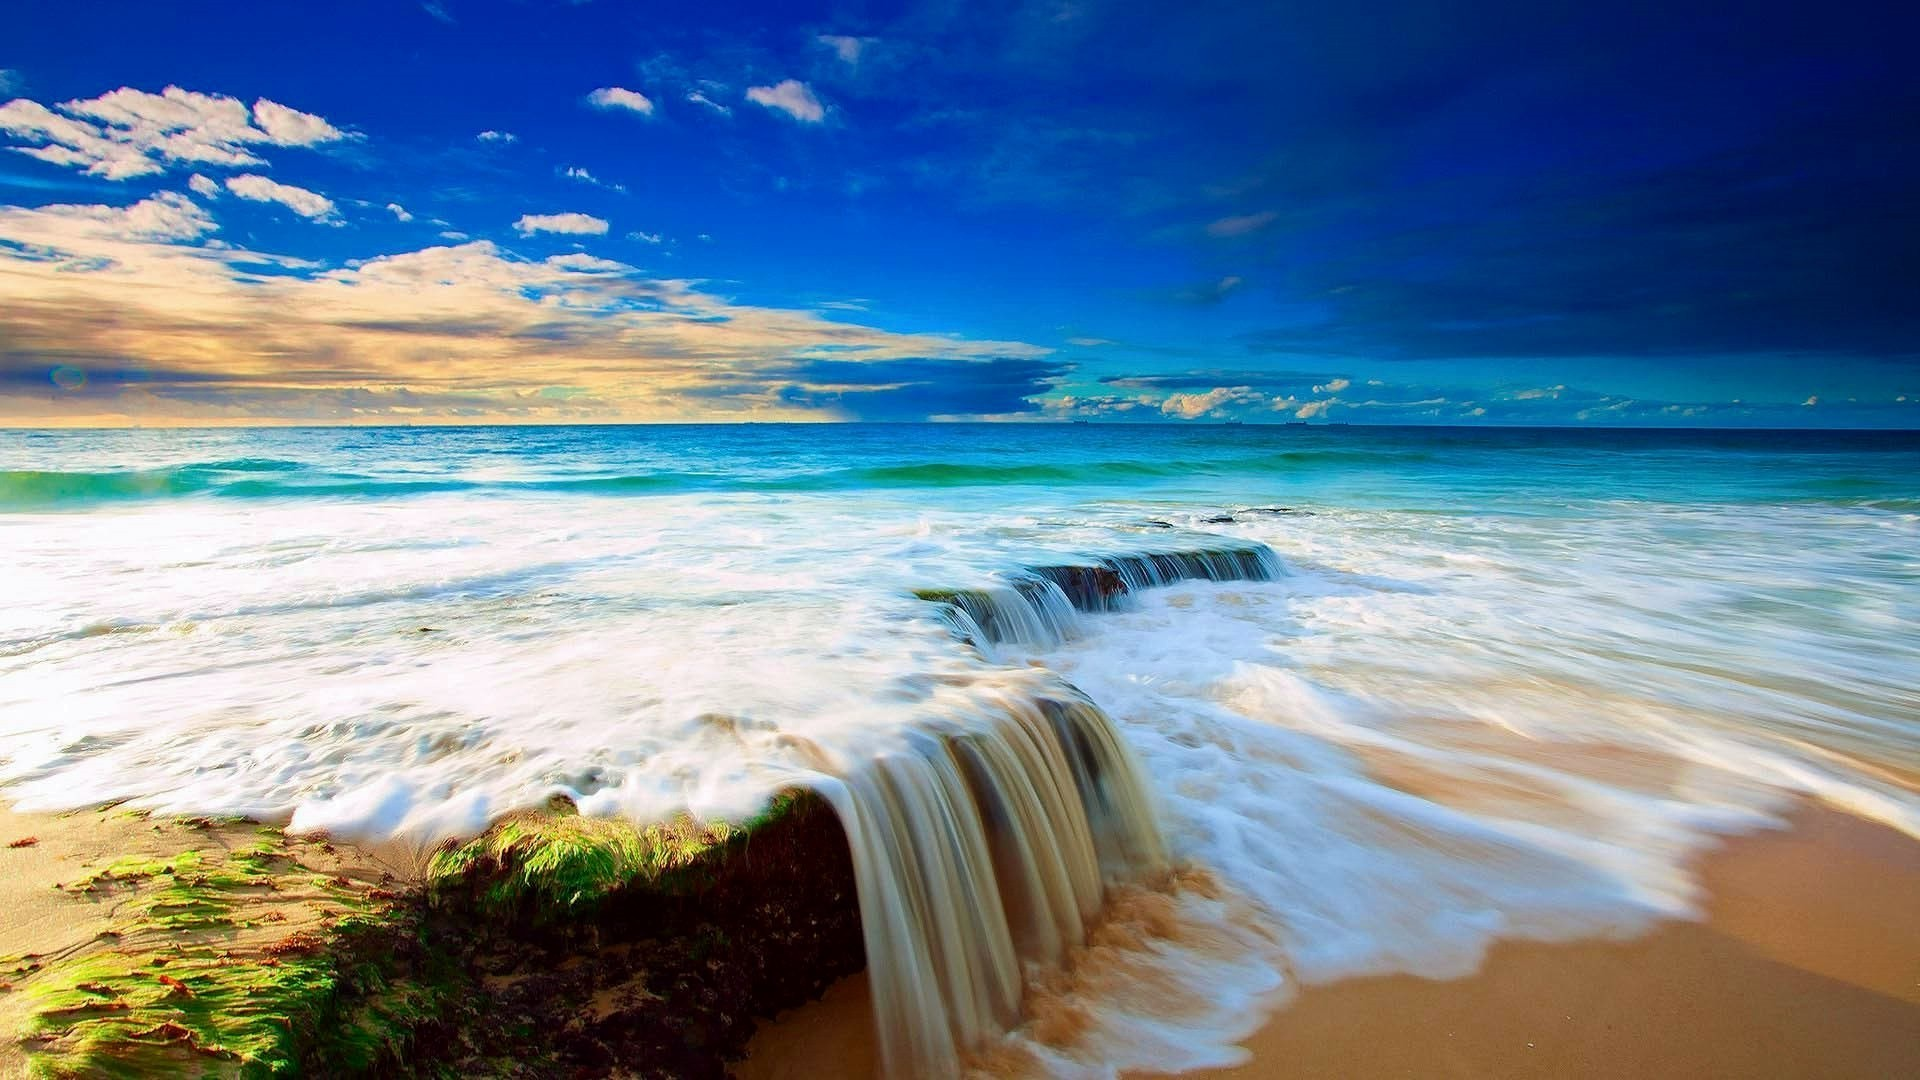 Wave Tag – Water Blue Wave Sky Courtain Sand Ocean Clouds Waterfall White  Beach Summer Beautiful